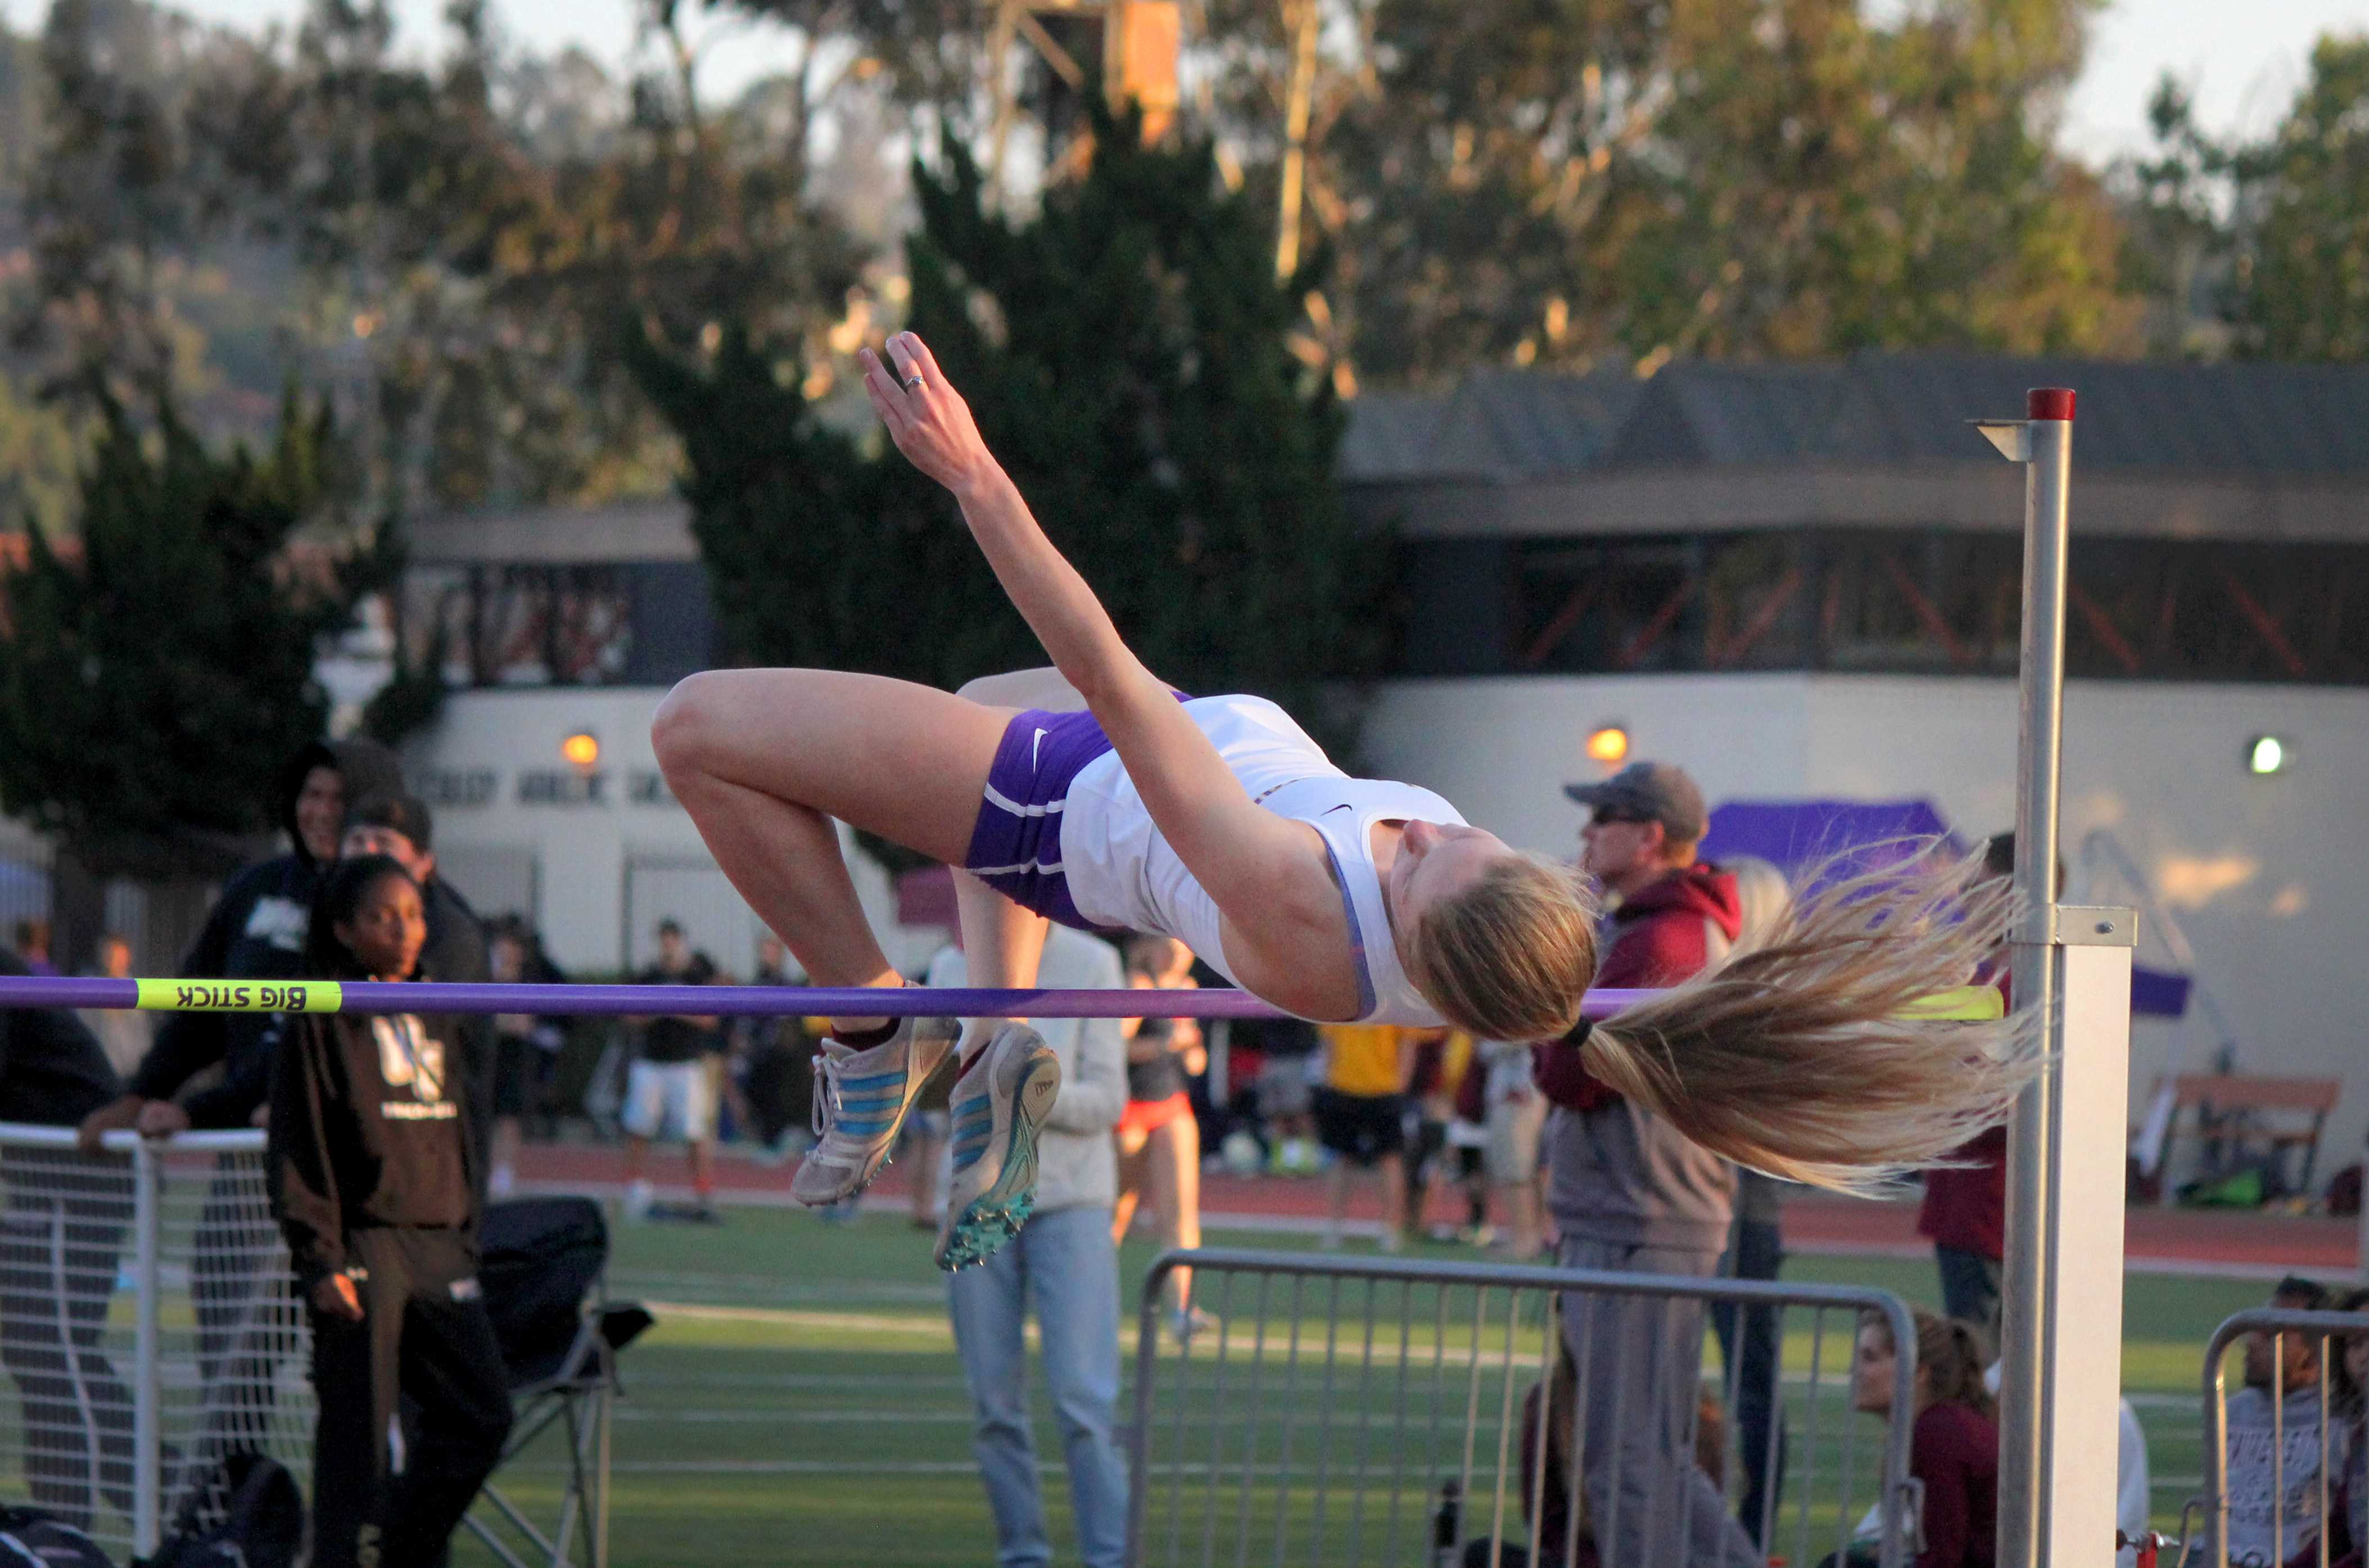 Sophomore Carlie Burow placed third in the High Jump with a height of 1.52m on day two of the SCIAC Championships to help her team in their third place finish. Photo by Madi Schmader - Staff Photographer